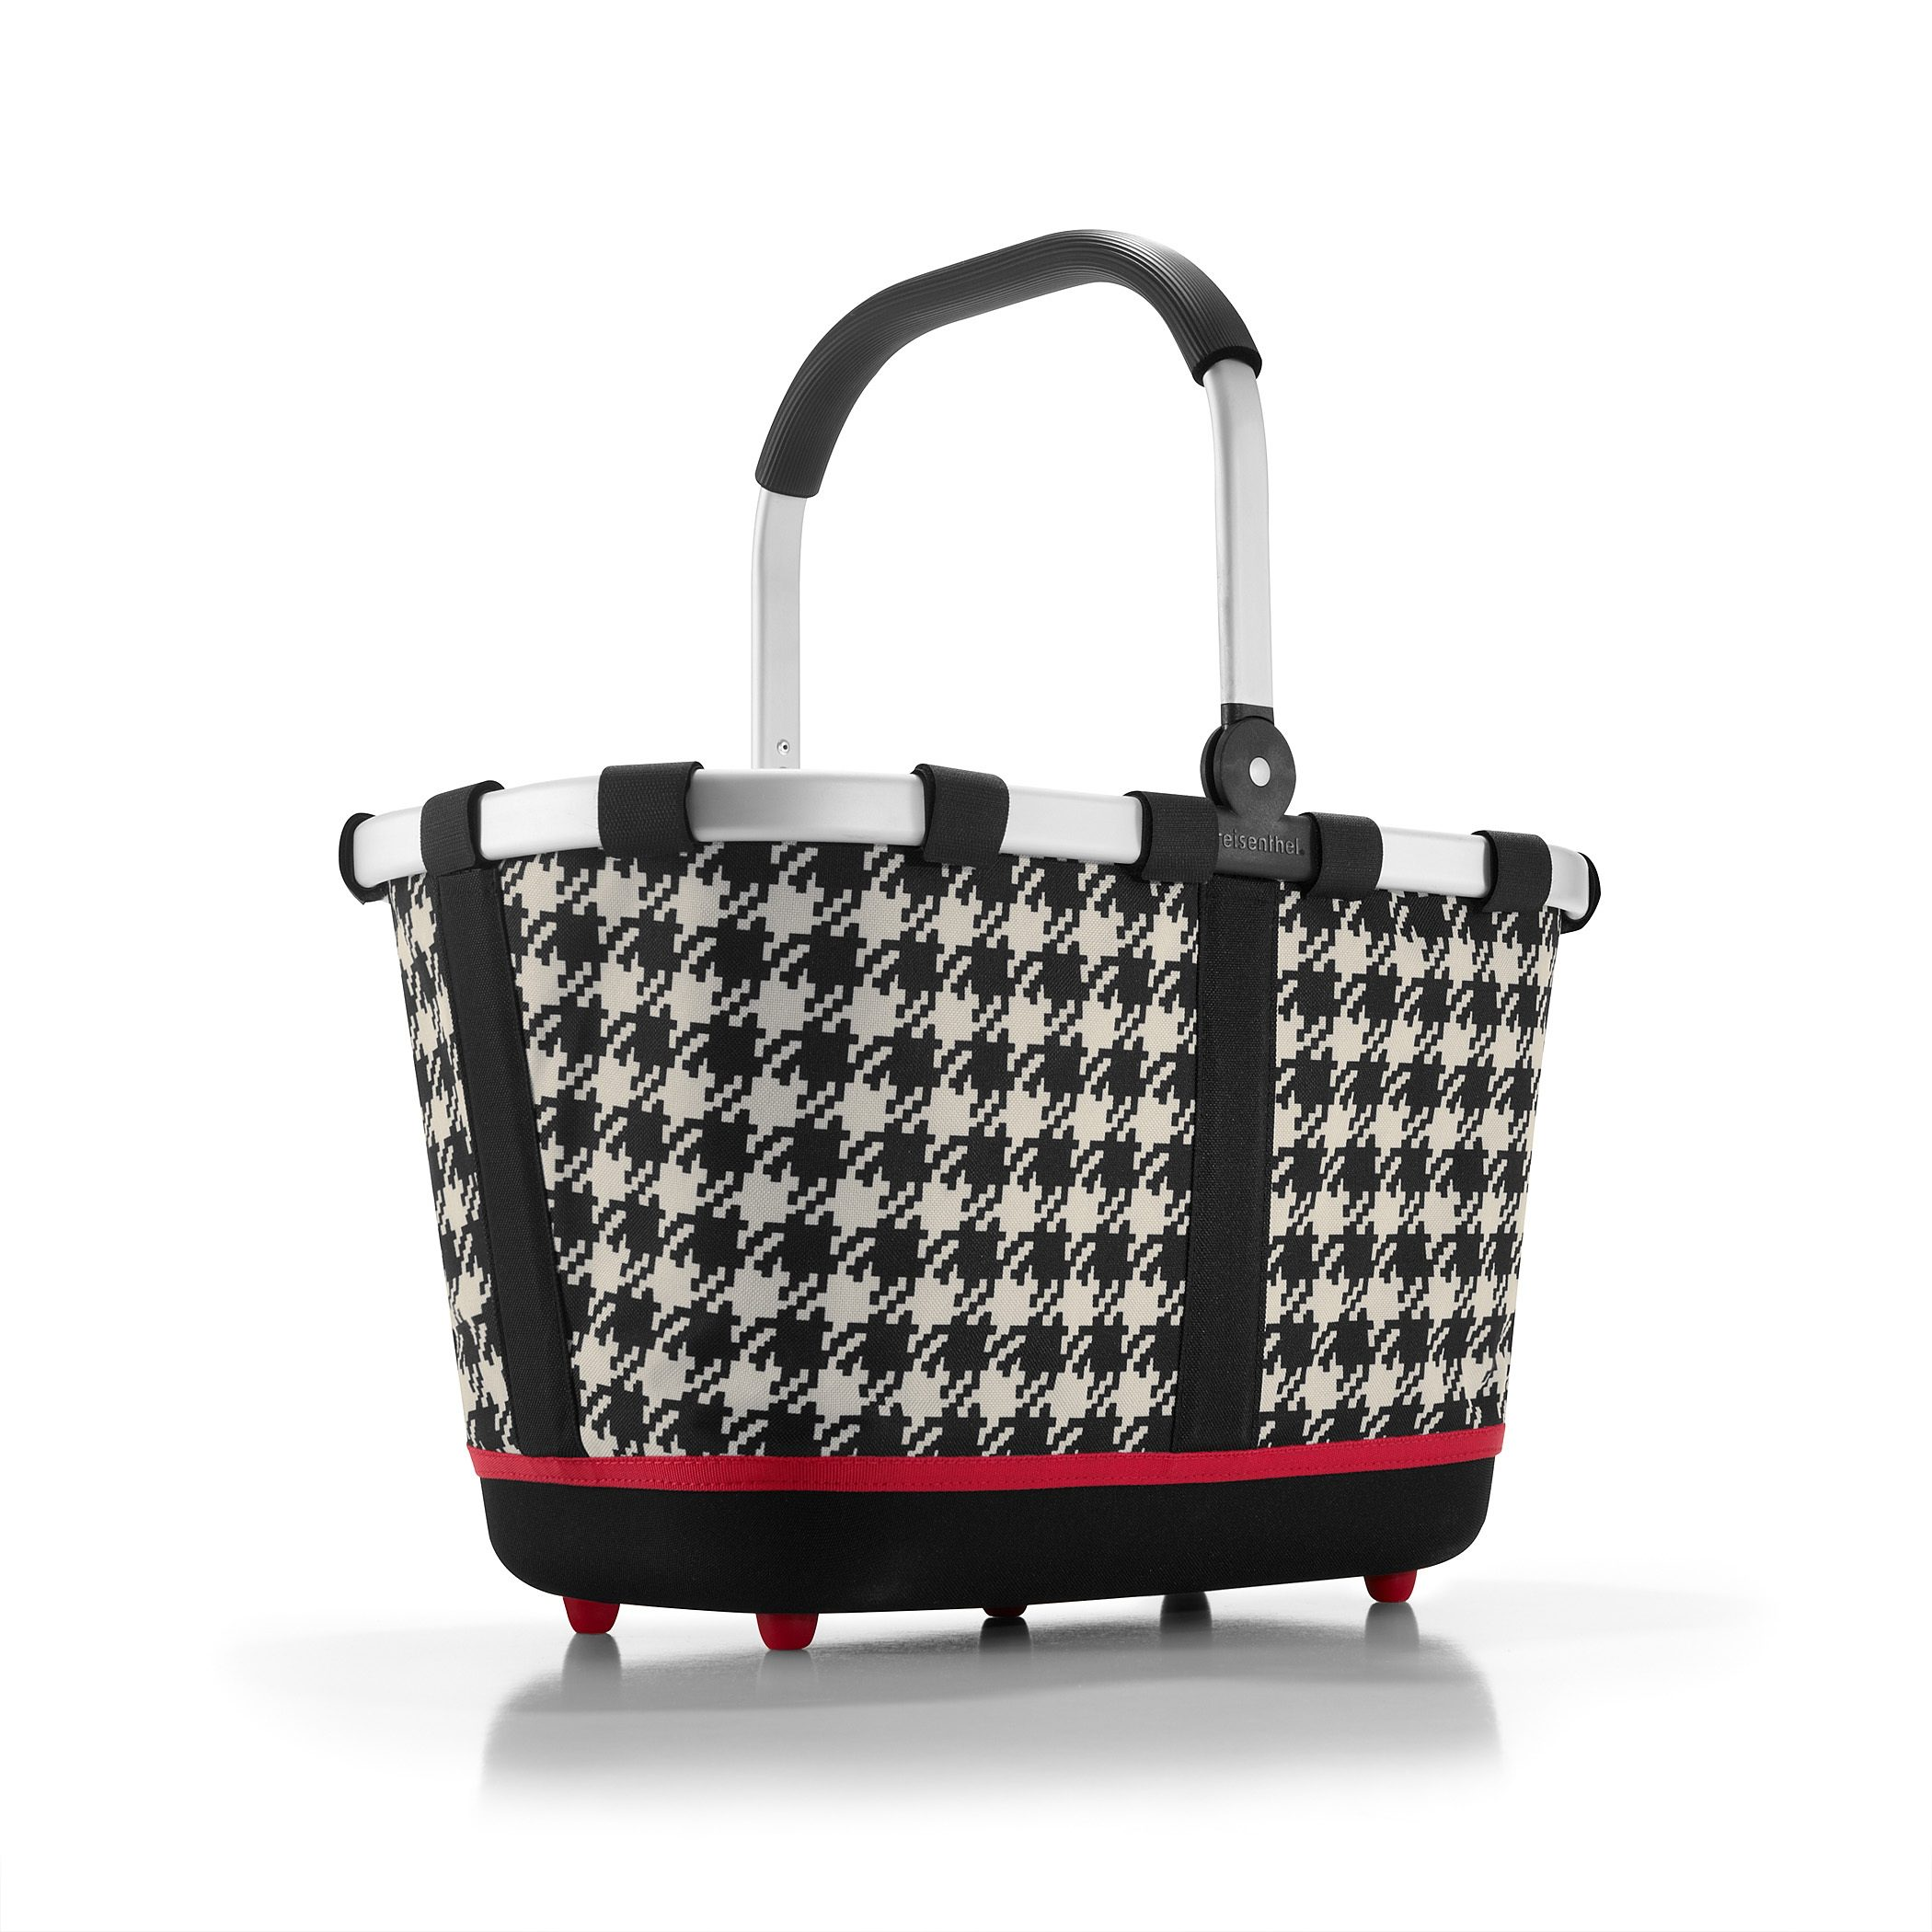 REISENTHEL® Carrybag 2 »fifties black«